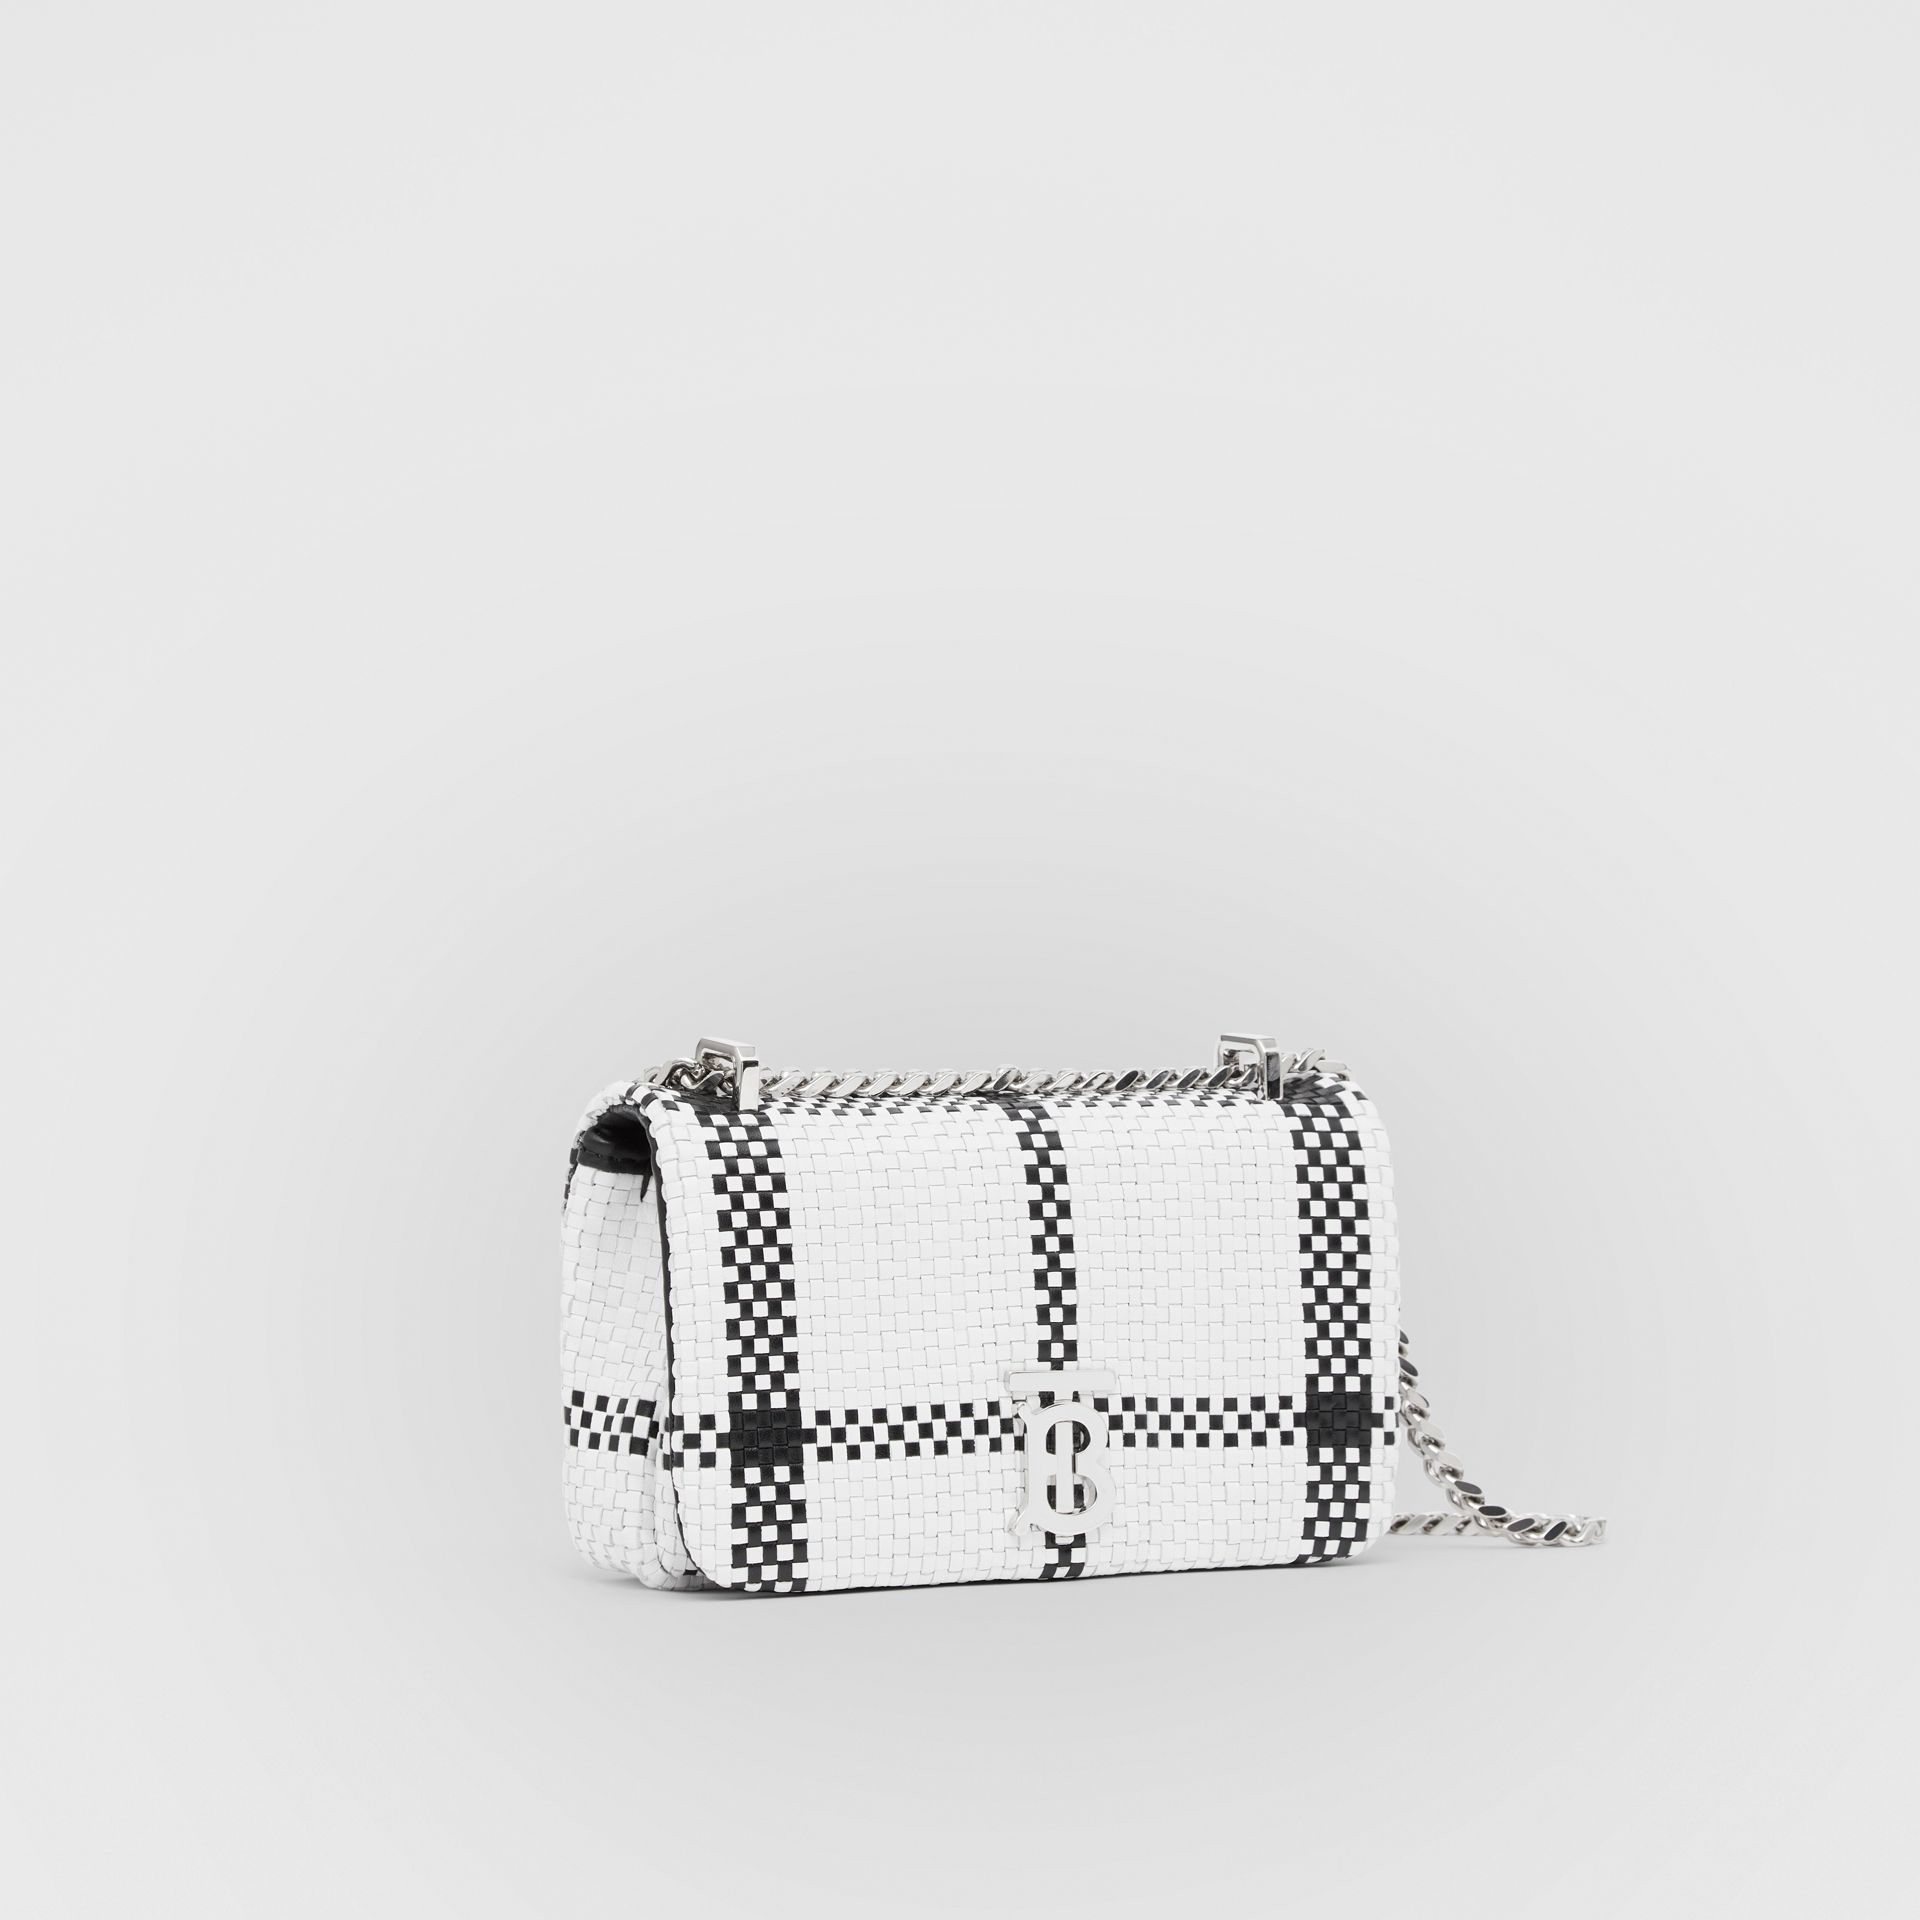 Mini Latticed Leather Lola Bag in Black/white - Women | Burberry - gallery image 6